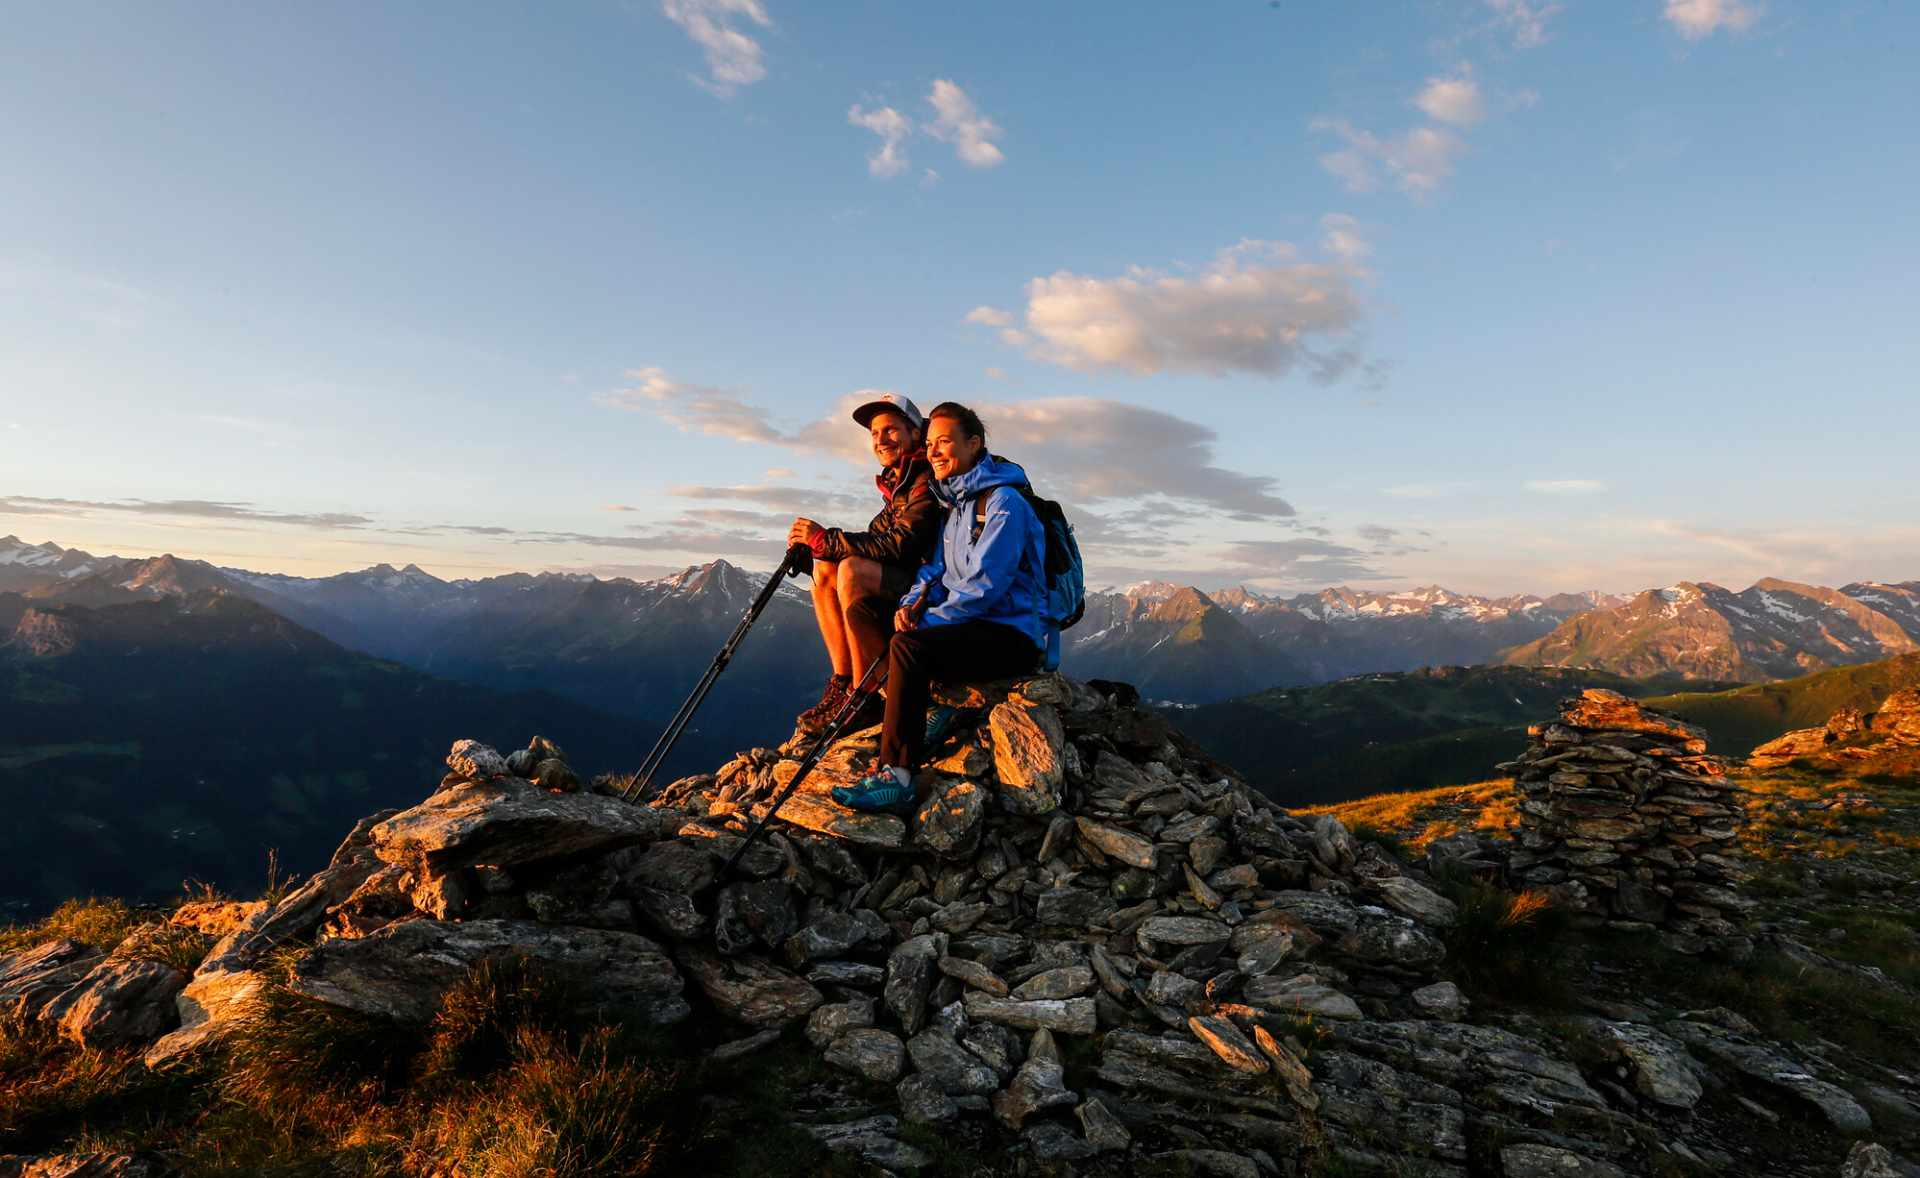 Hikers enjoy the sunrise in the Zillertal